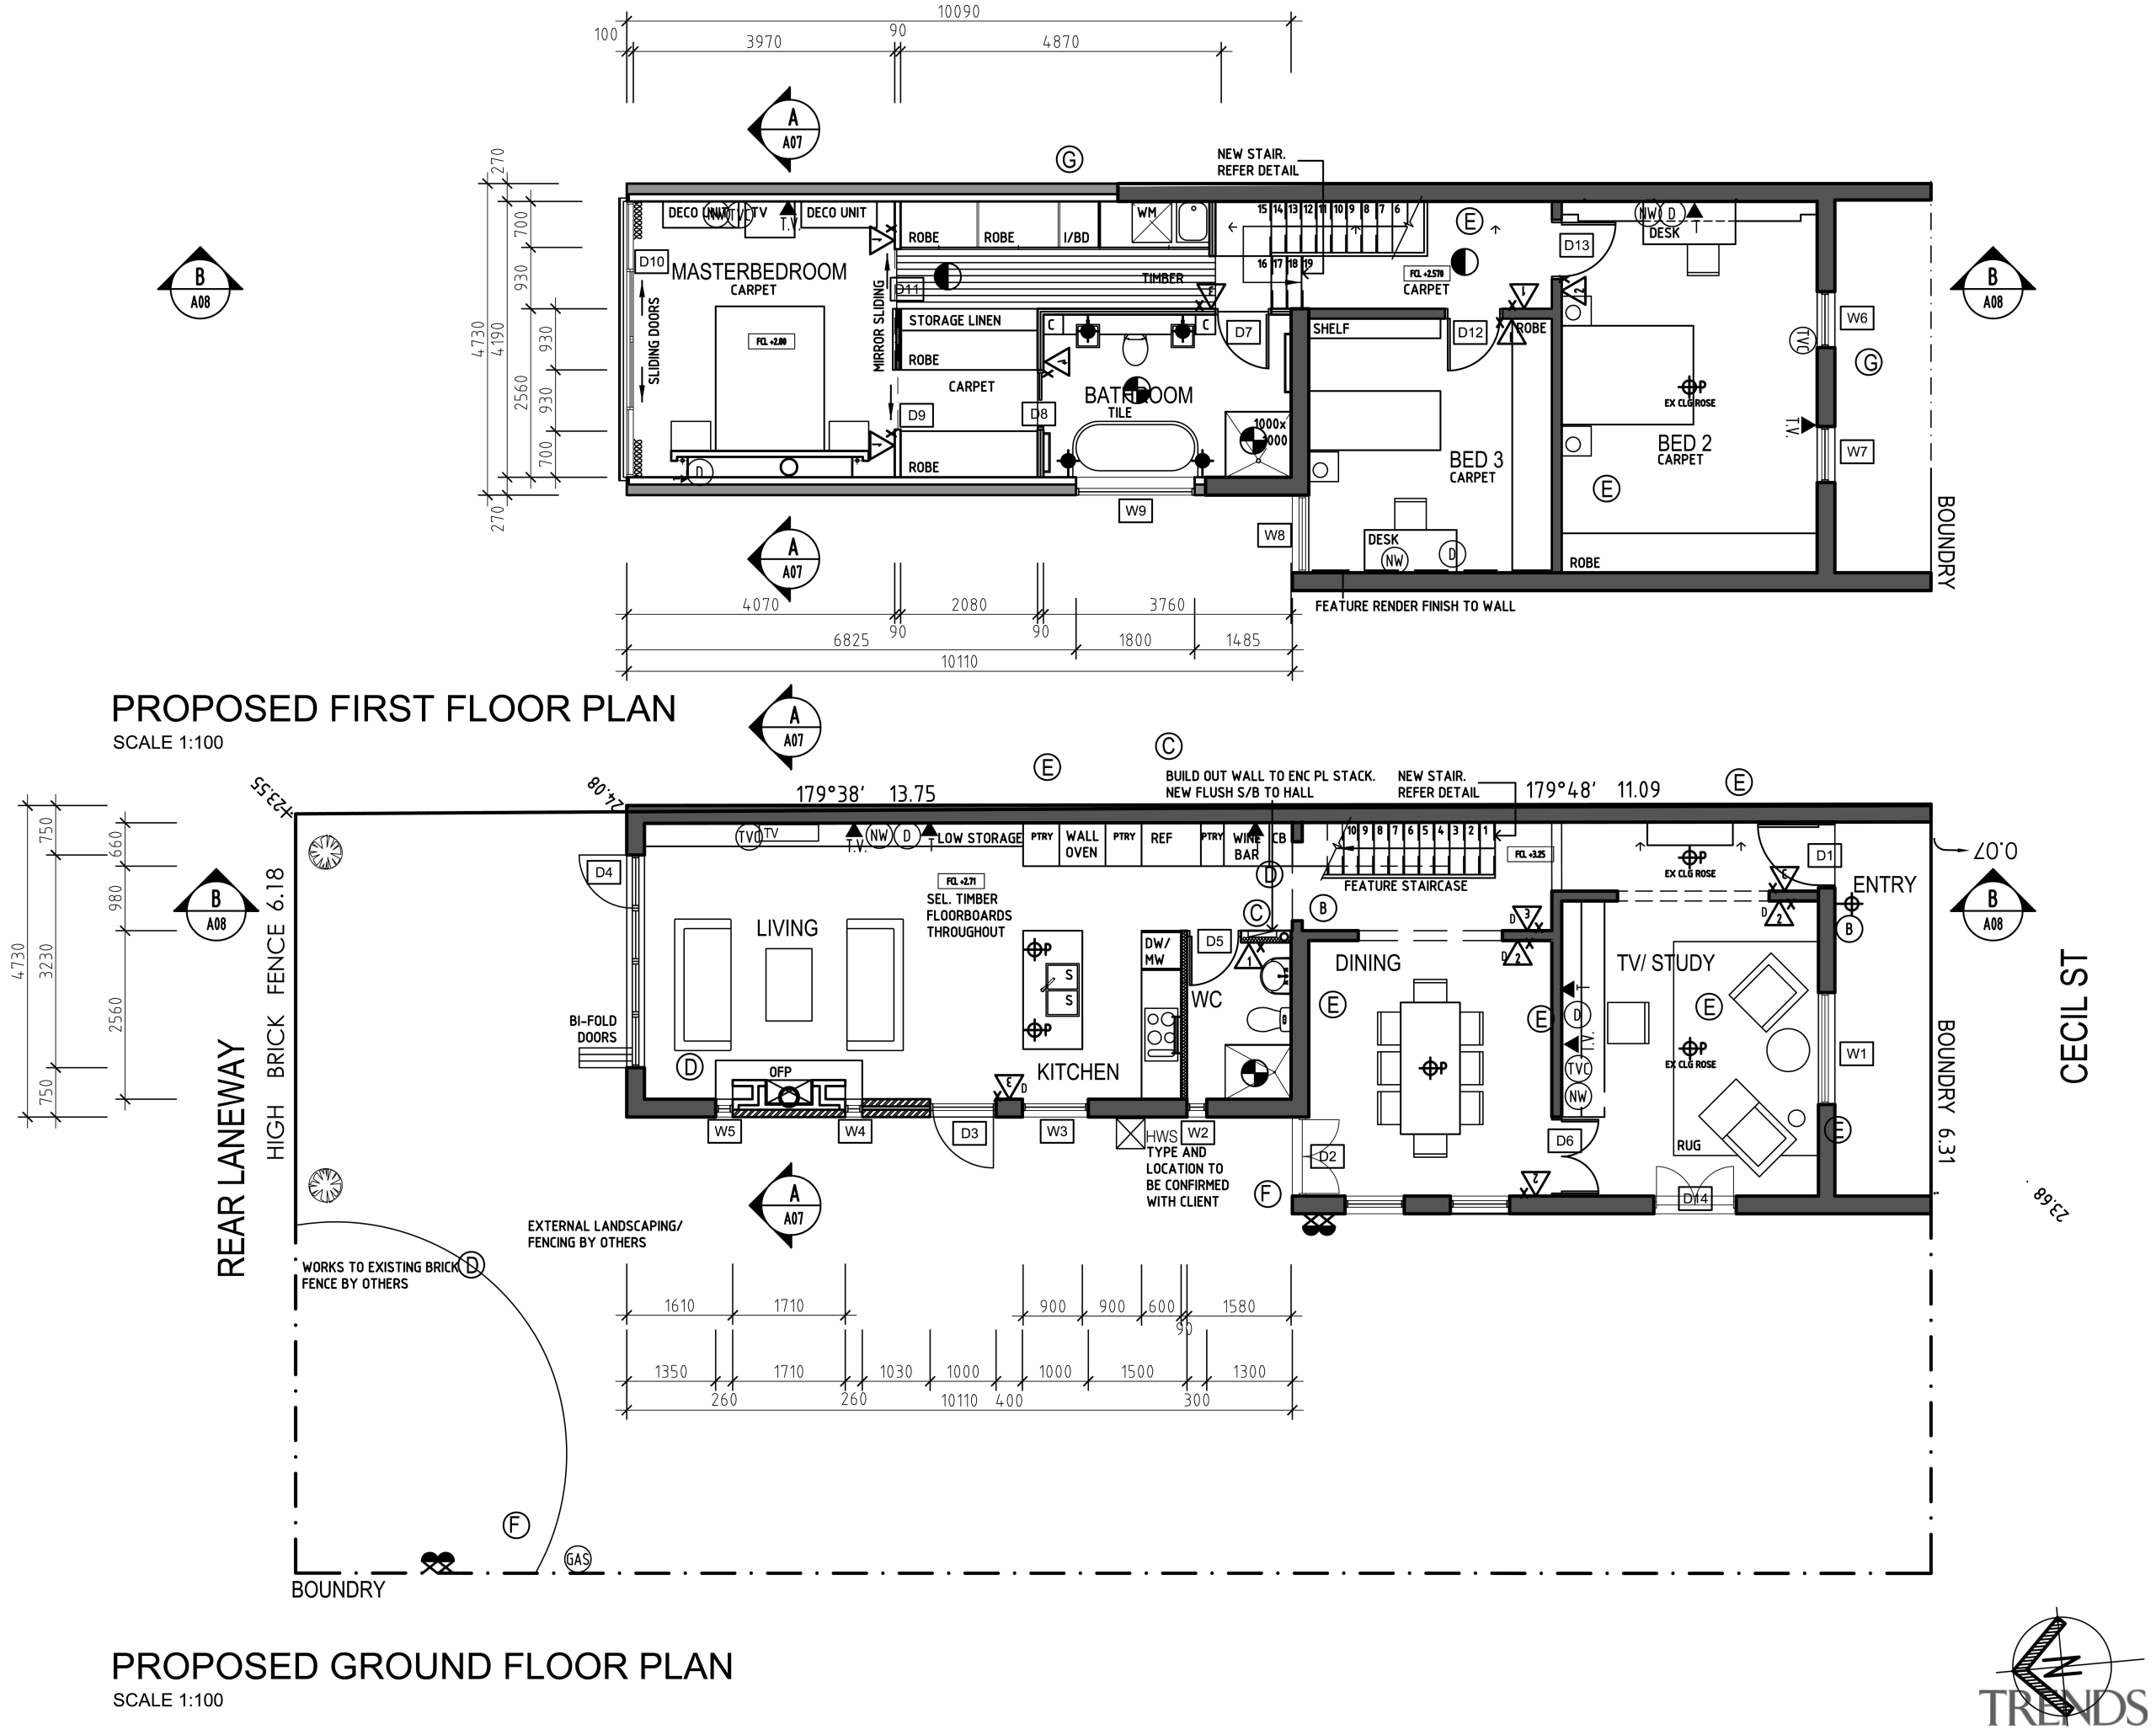 View of the plans for the kitchen. - area, artwork, black and white, design, diagram, drawing, floor plan, line, plan, product design, technical drawing, text, white